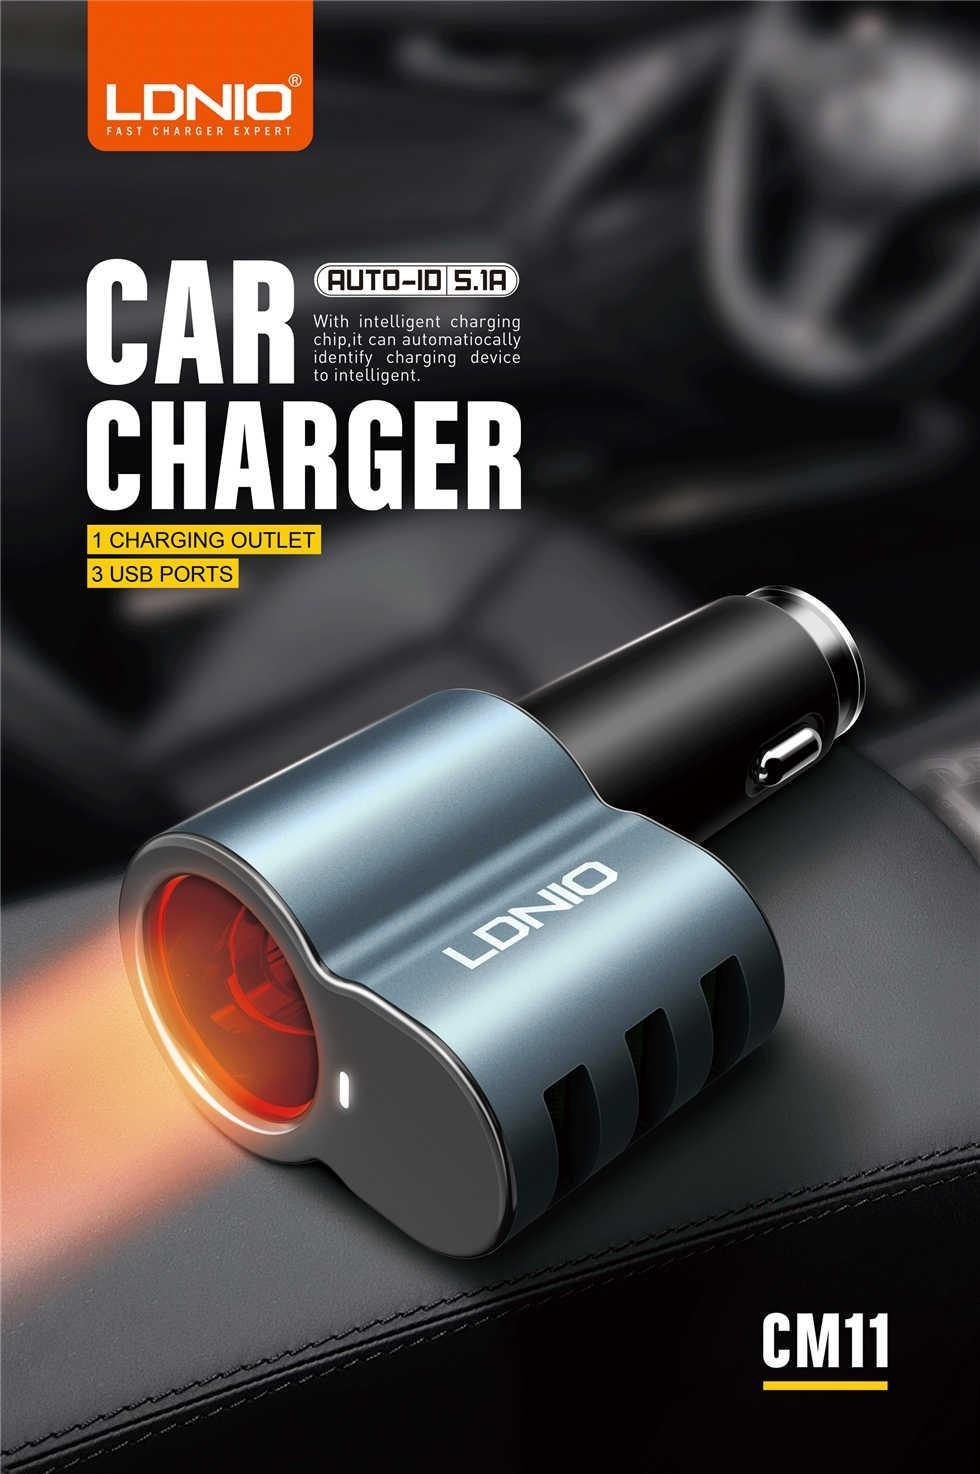 Sale On Cm11 3 Ports Car Charger With Cable For Andorid 51a Ldnio 34a Auto Id Usb Port